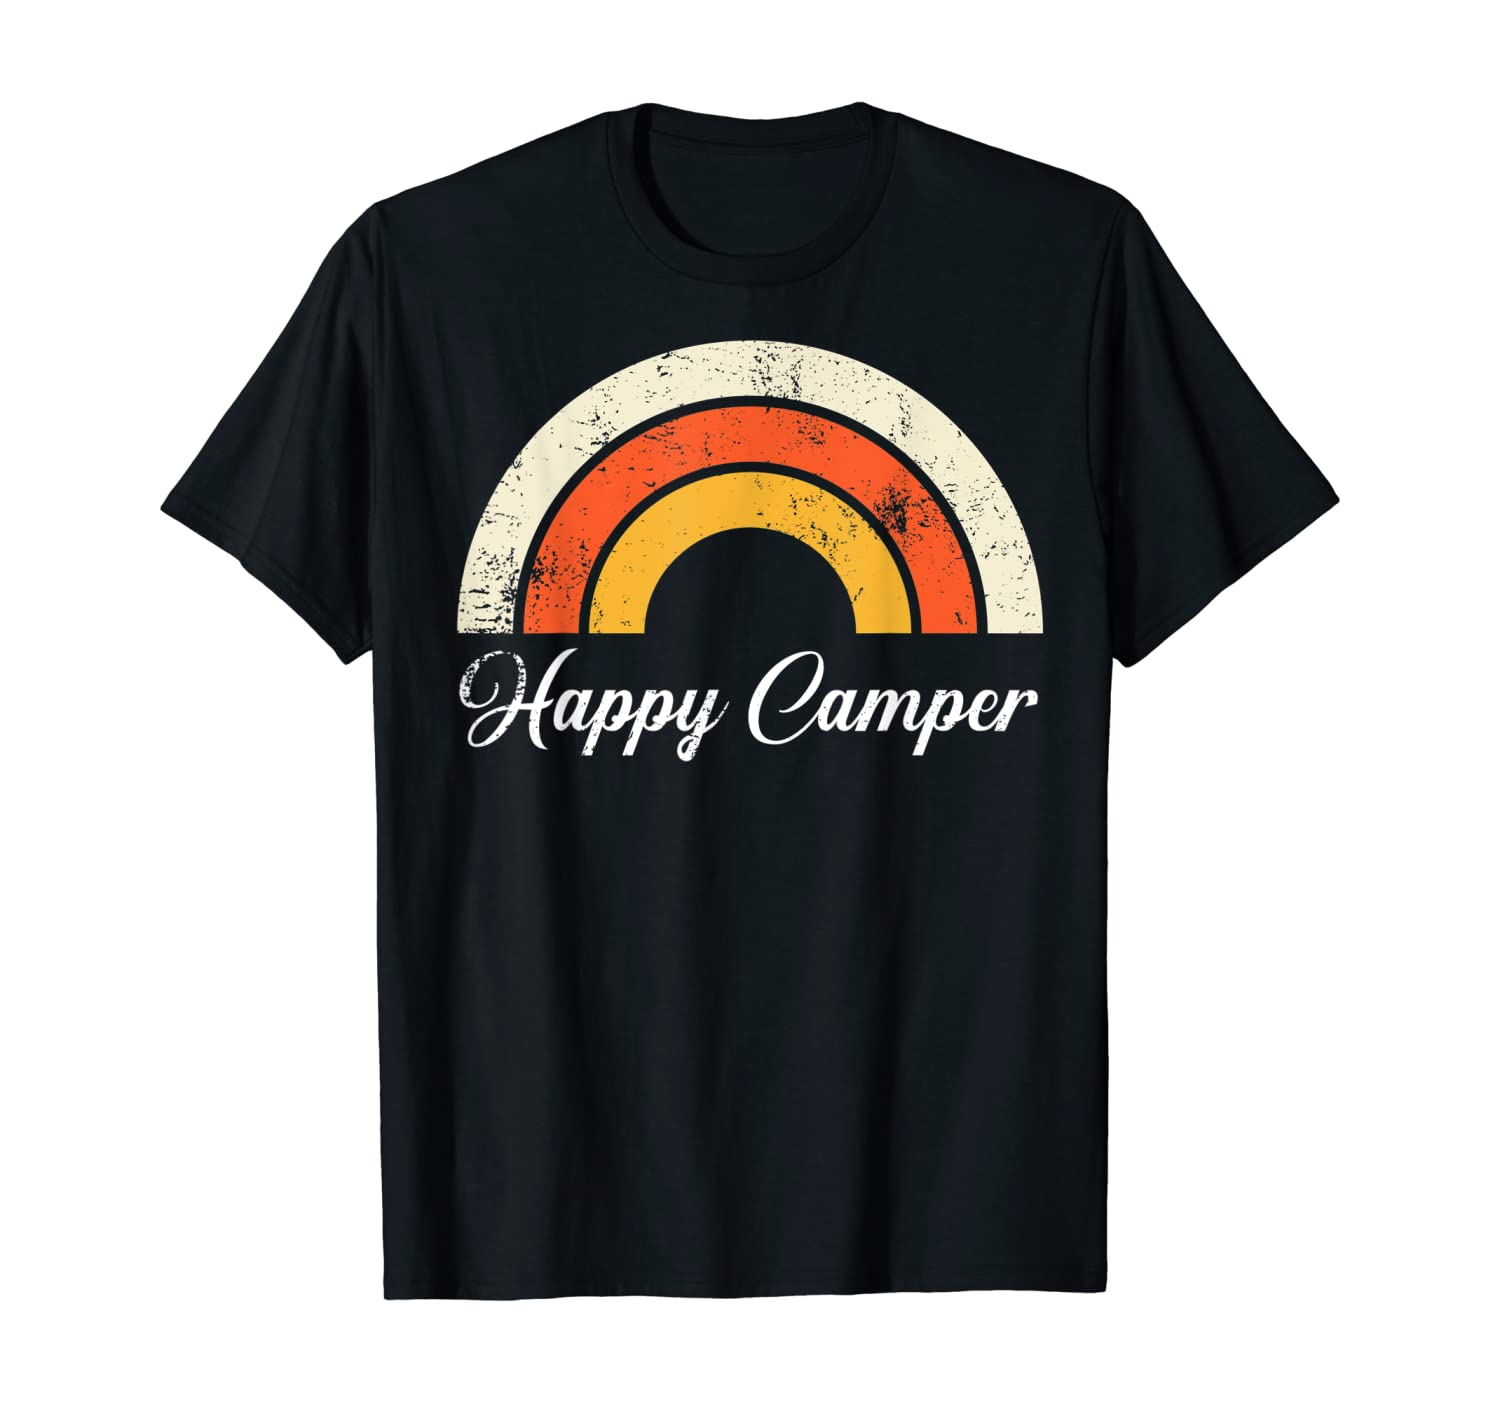 Happy Camper Shirt. Shirts For Women Shirts For Men Graphic T-Shirt